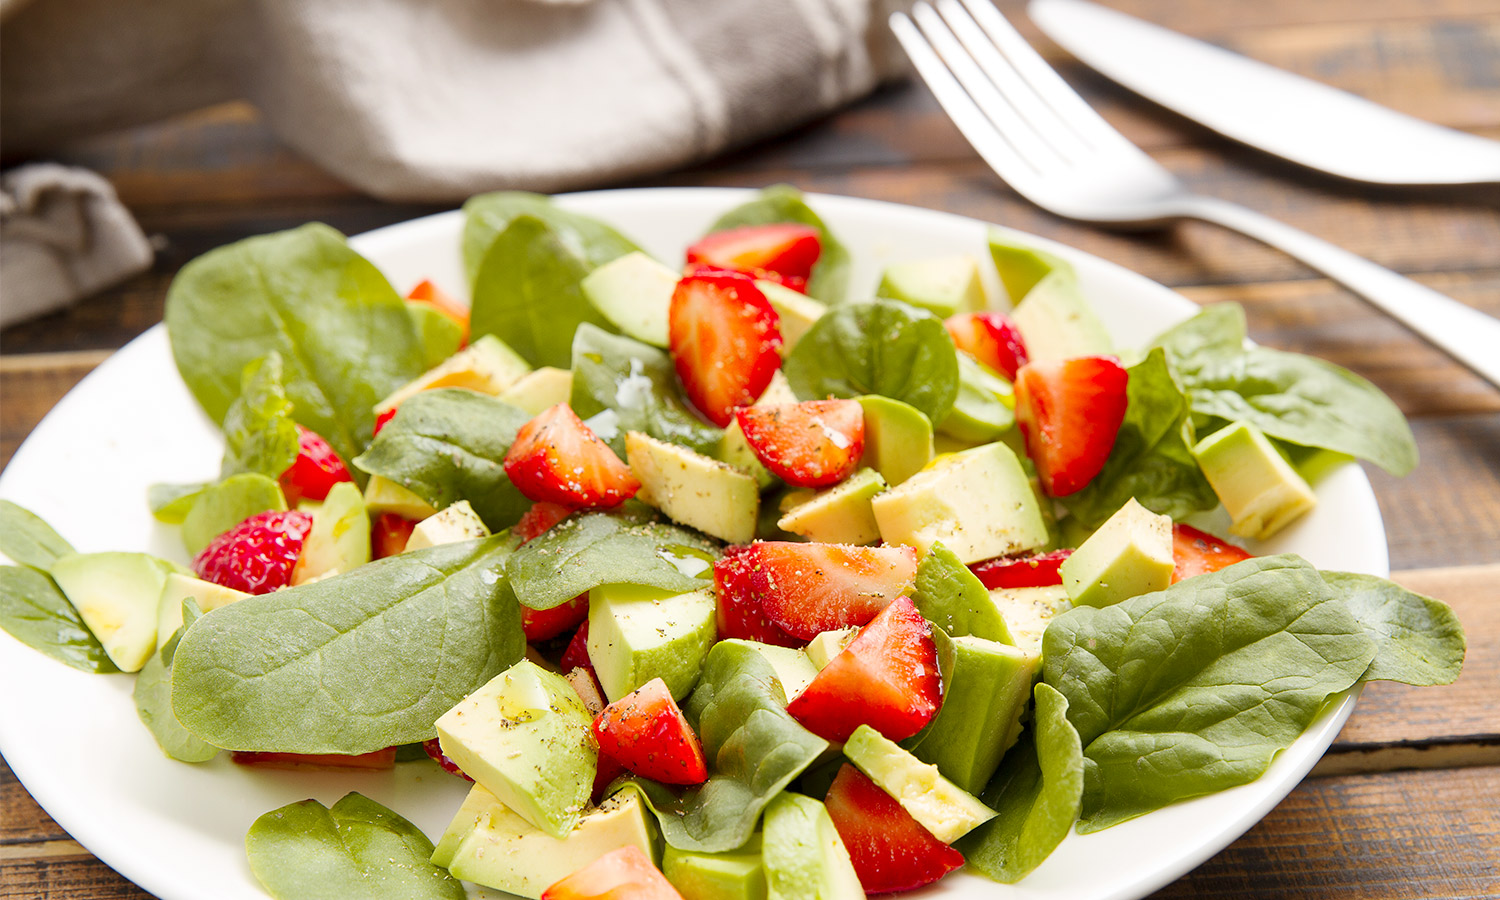 Salad with strawberries, avocado and spinach